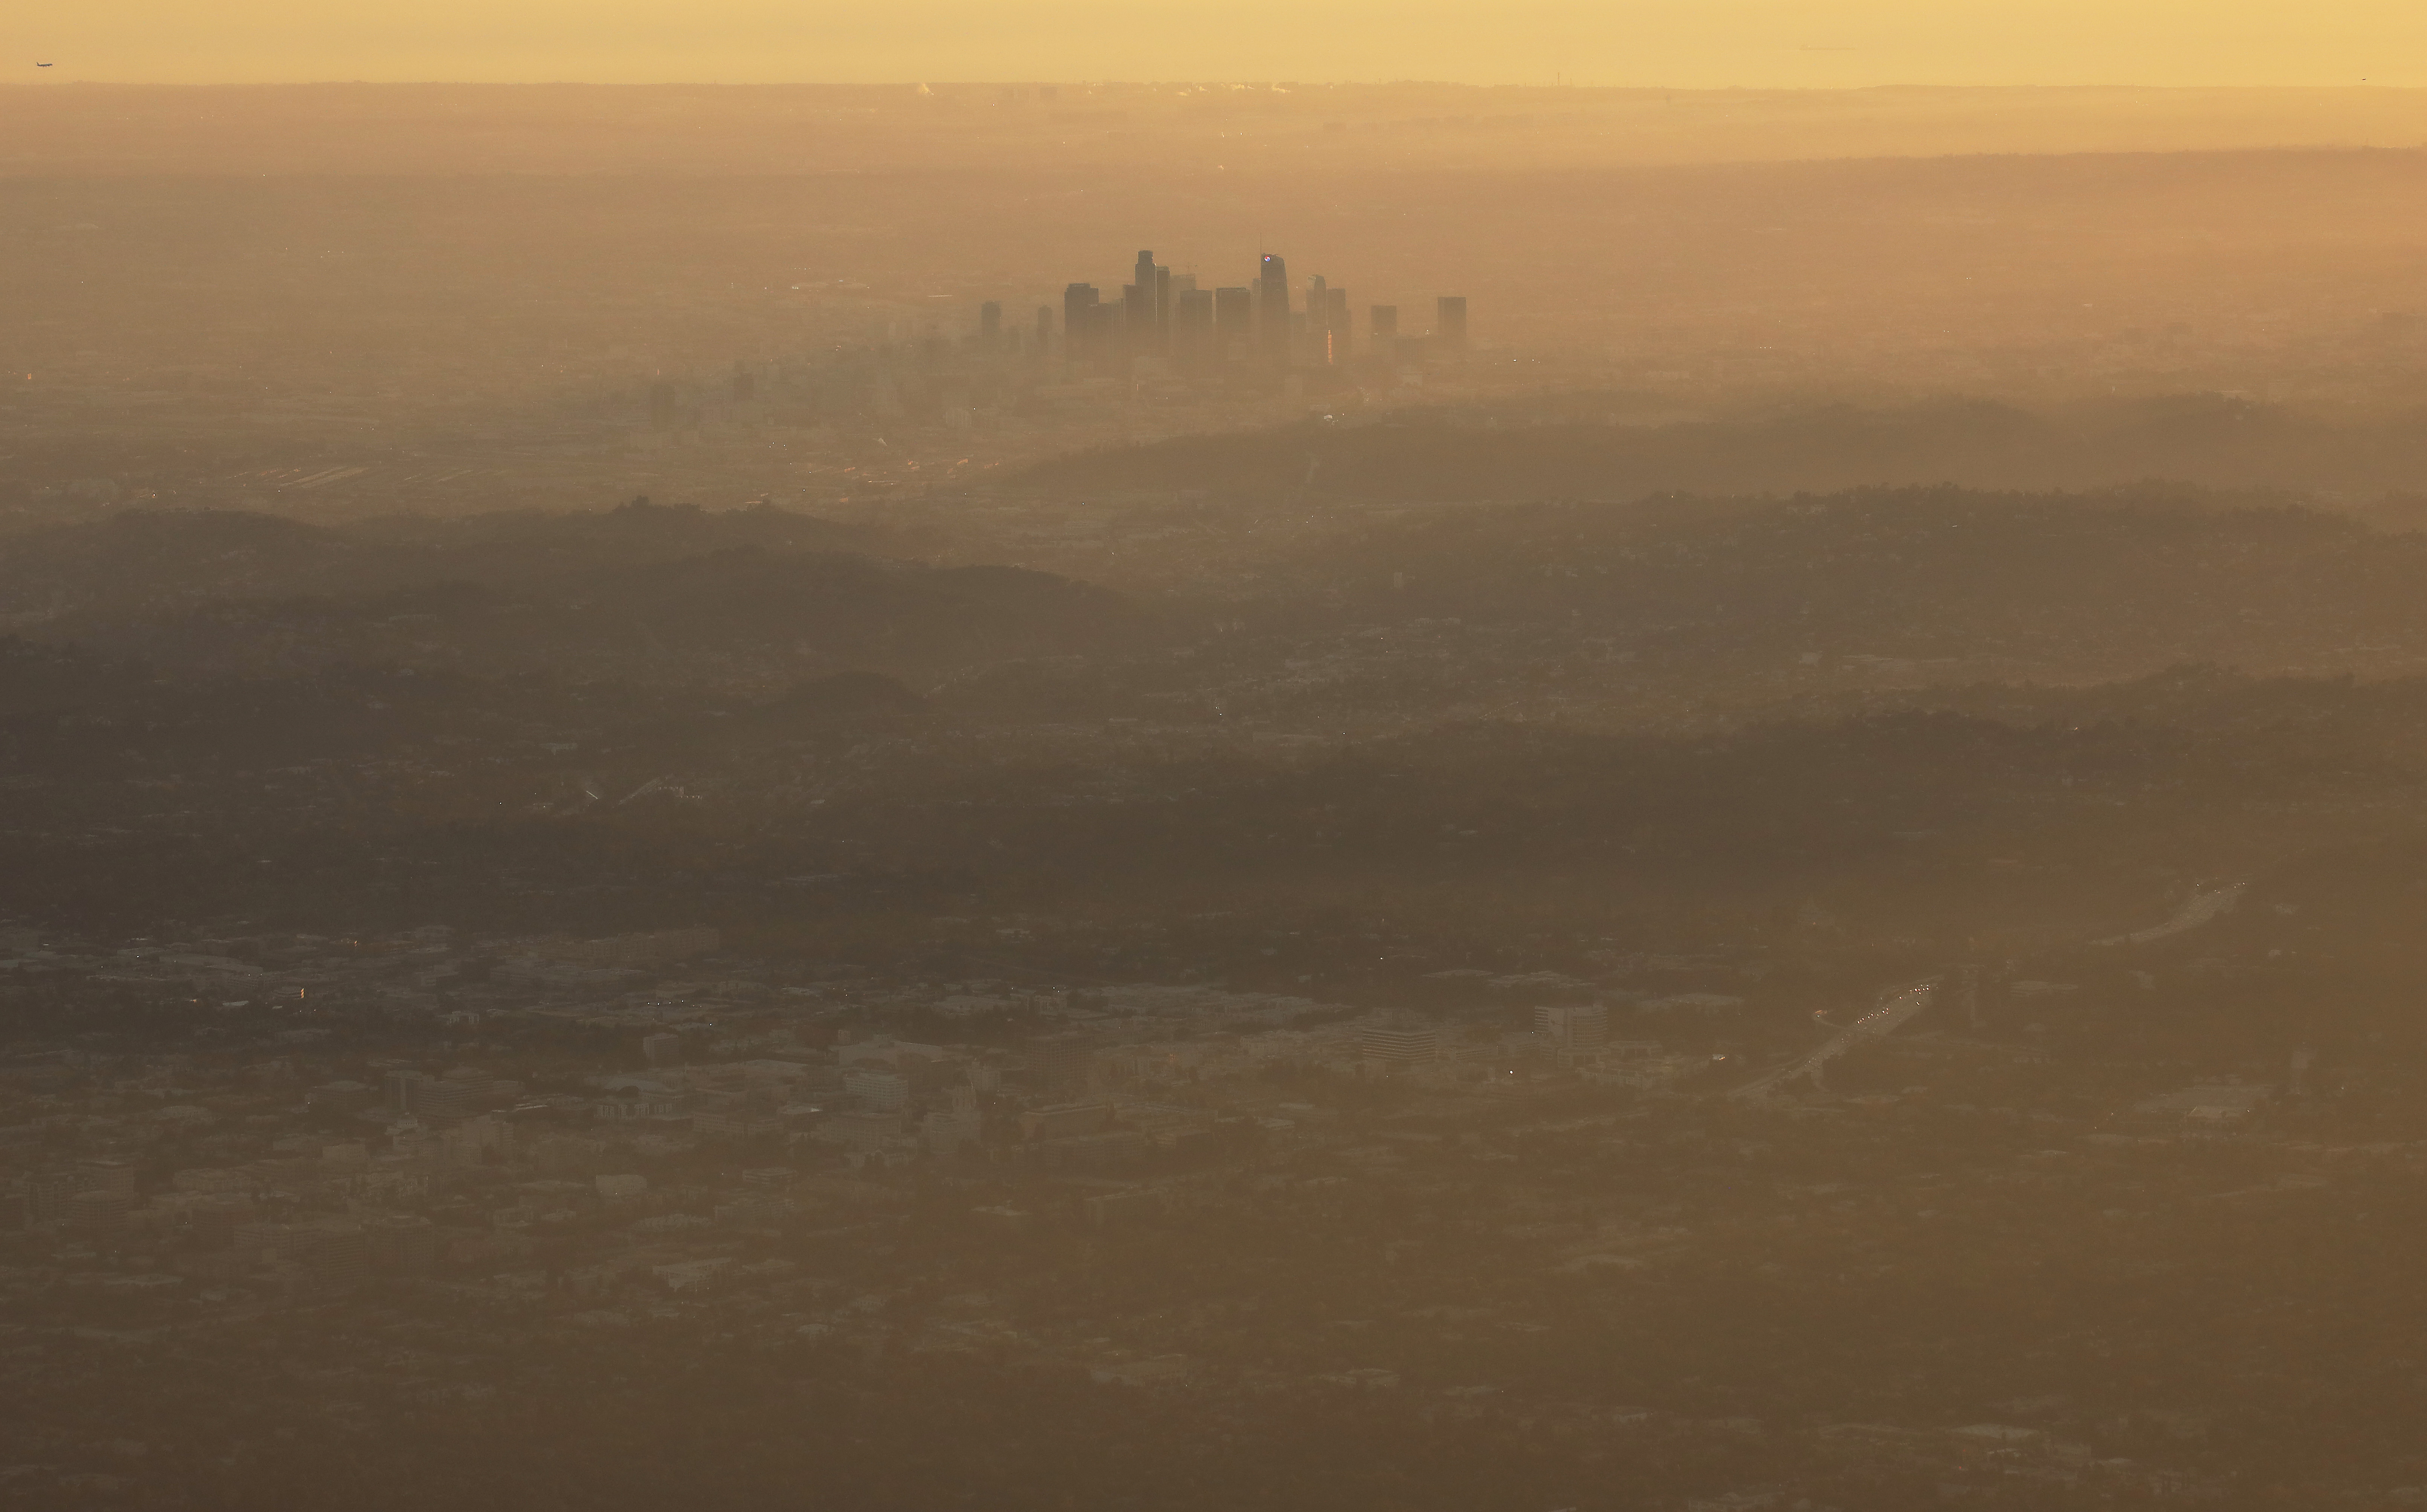 """PASADENA, CALIFORNIA - NOVEMBER 05: The buildings of downtown Los Angeles are partially obscured in the late afternoon on November 5, 2019 as seen from Pasadena, California. The air quality for metropolitan Los Angeles was predicted to be """"unhealthy for sensitive groups"""" today by the South Coast Air Quality Management District."""